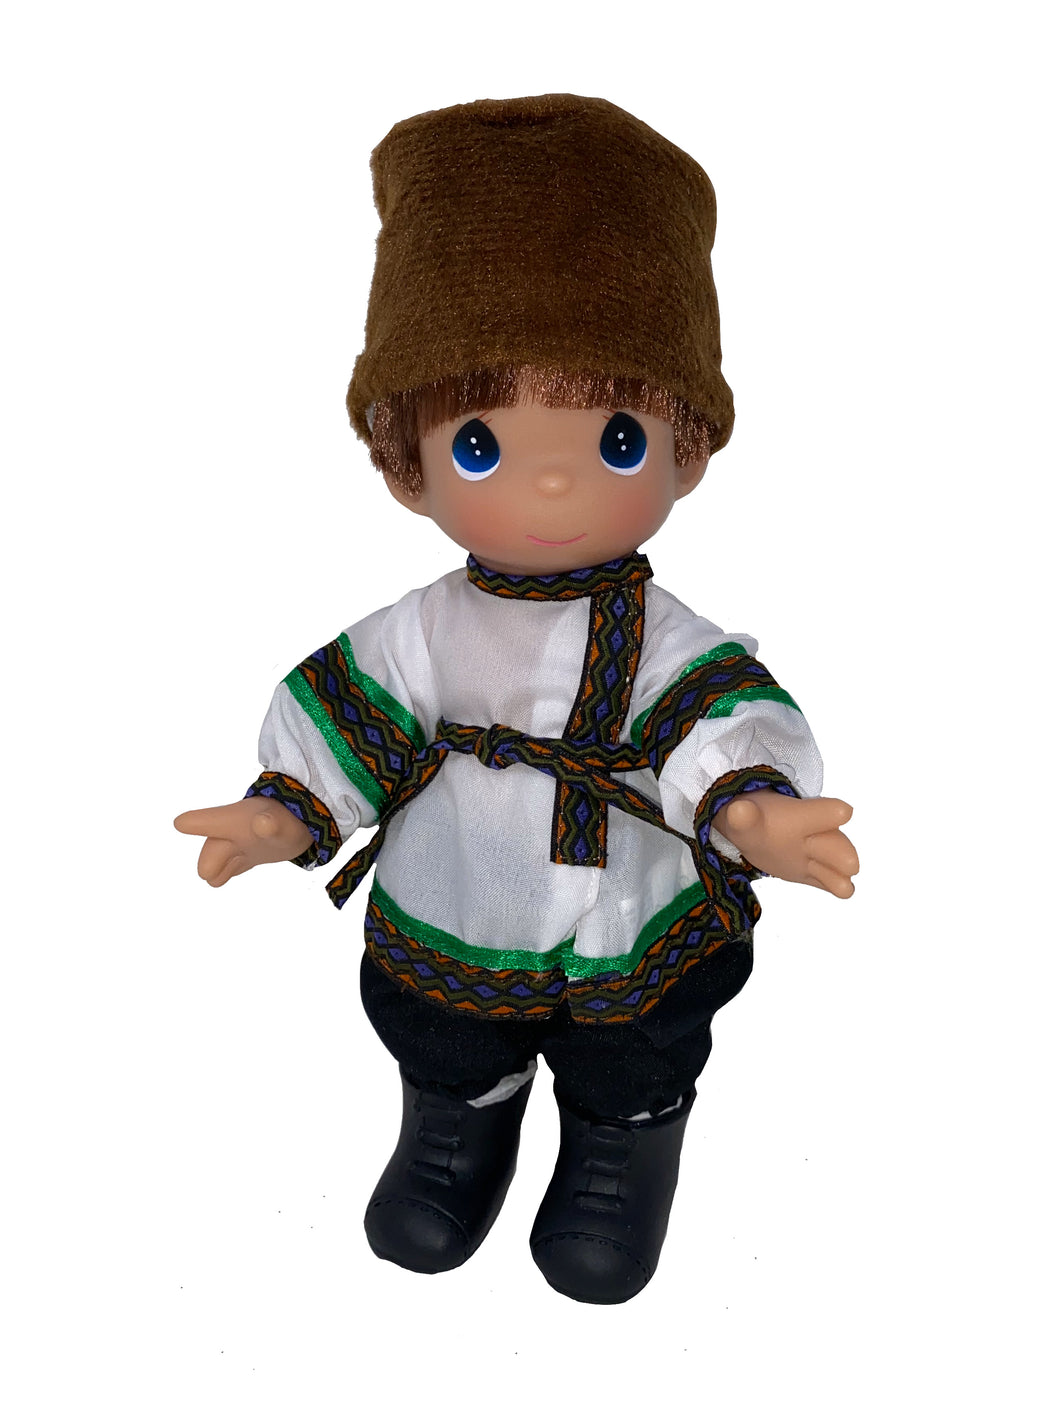 "Russia Rurik Children of the World - 9"" Doll"